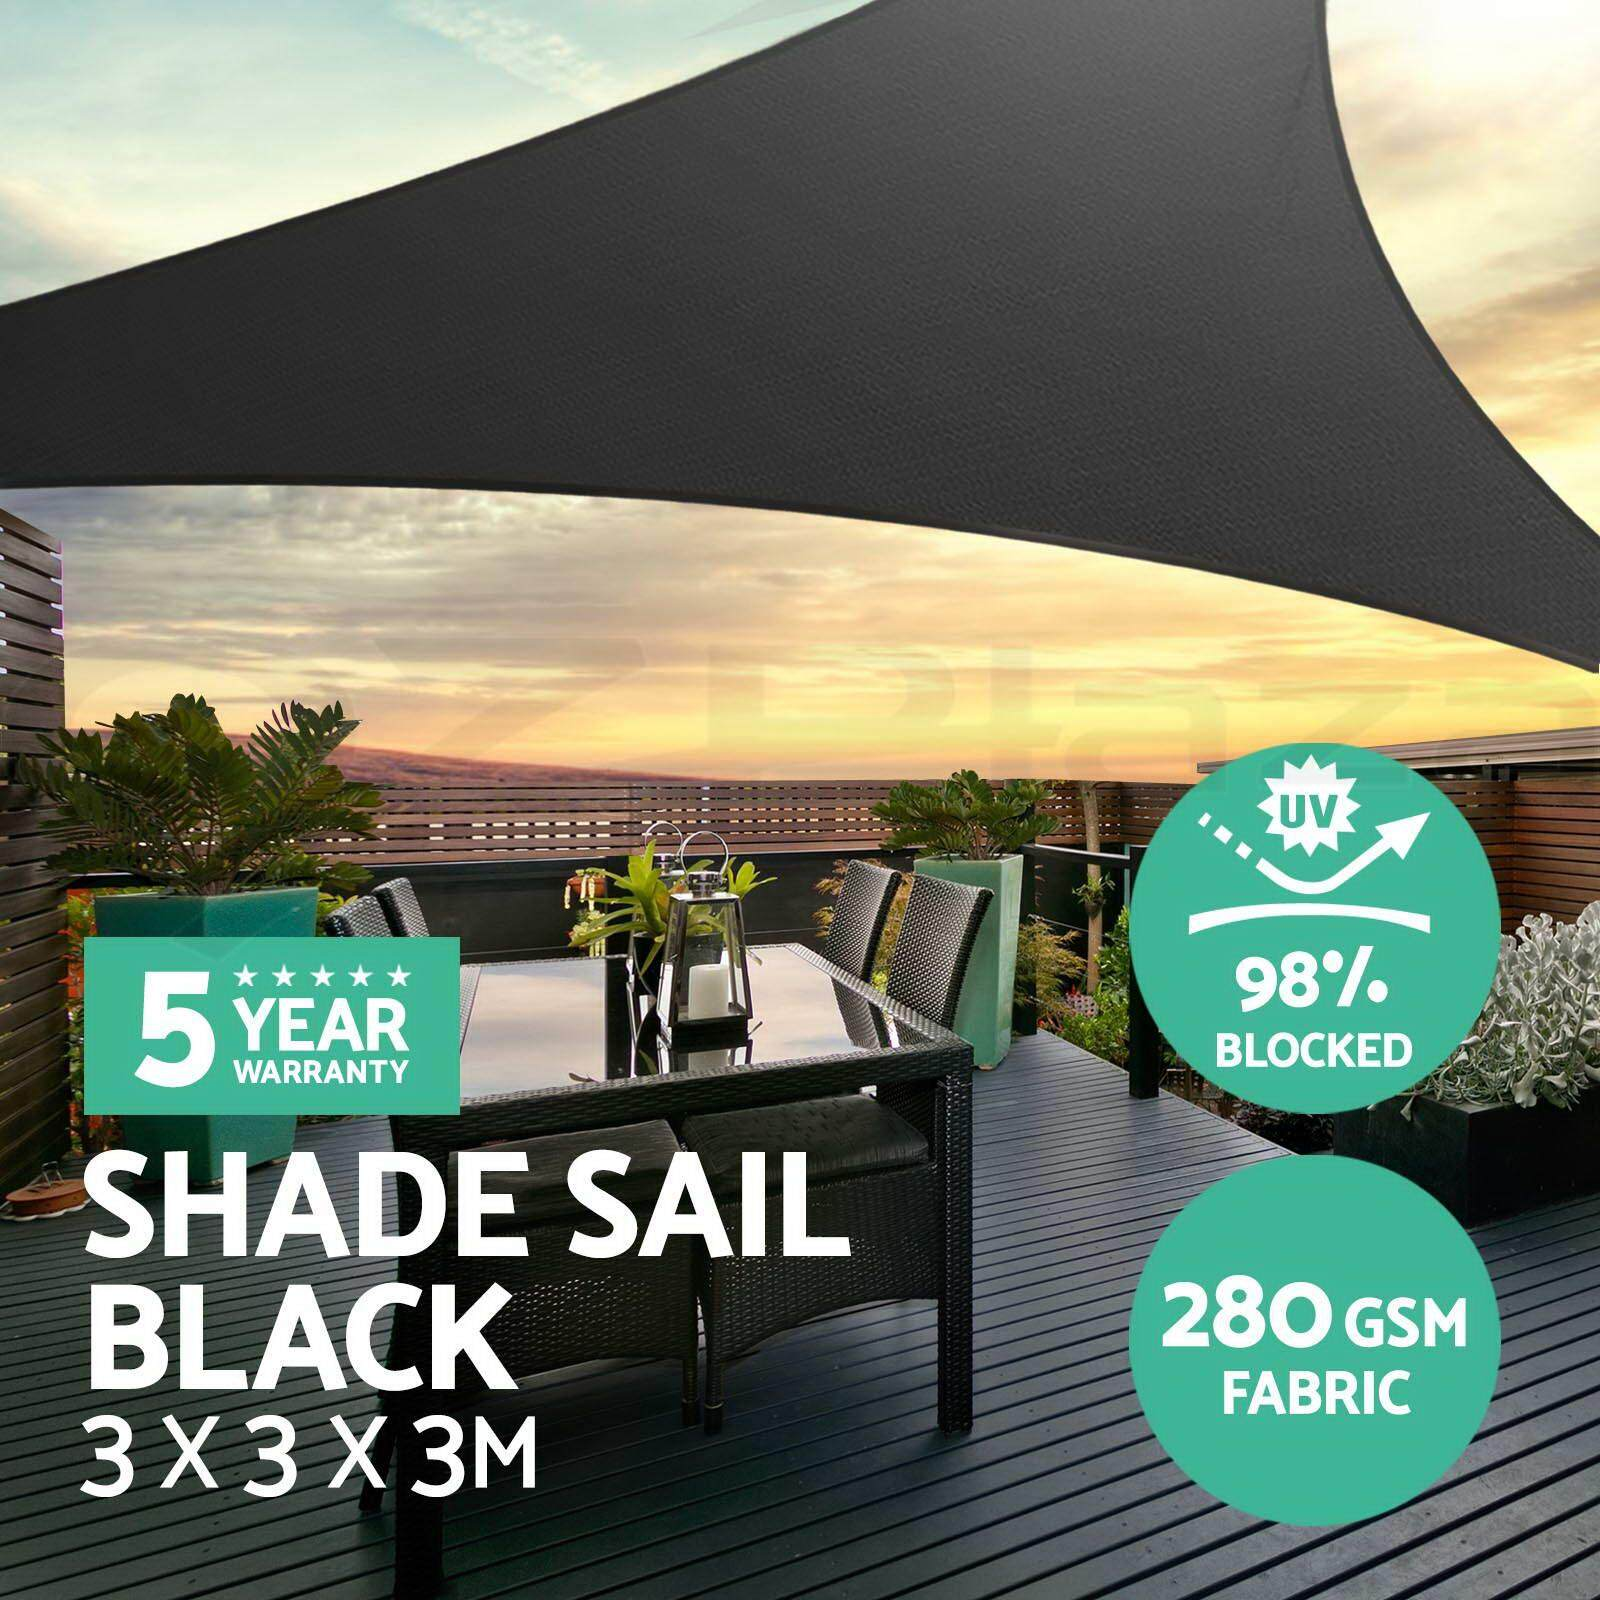 Extra Heavy Duty Shade Sail Sun Canopy Outdoor Triangle Square Rectangle Black  3*3*3m By Aure.